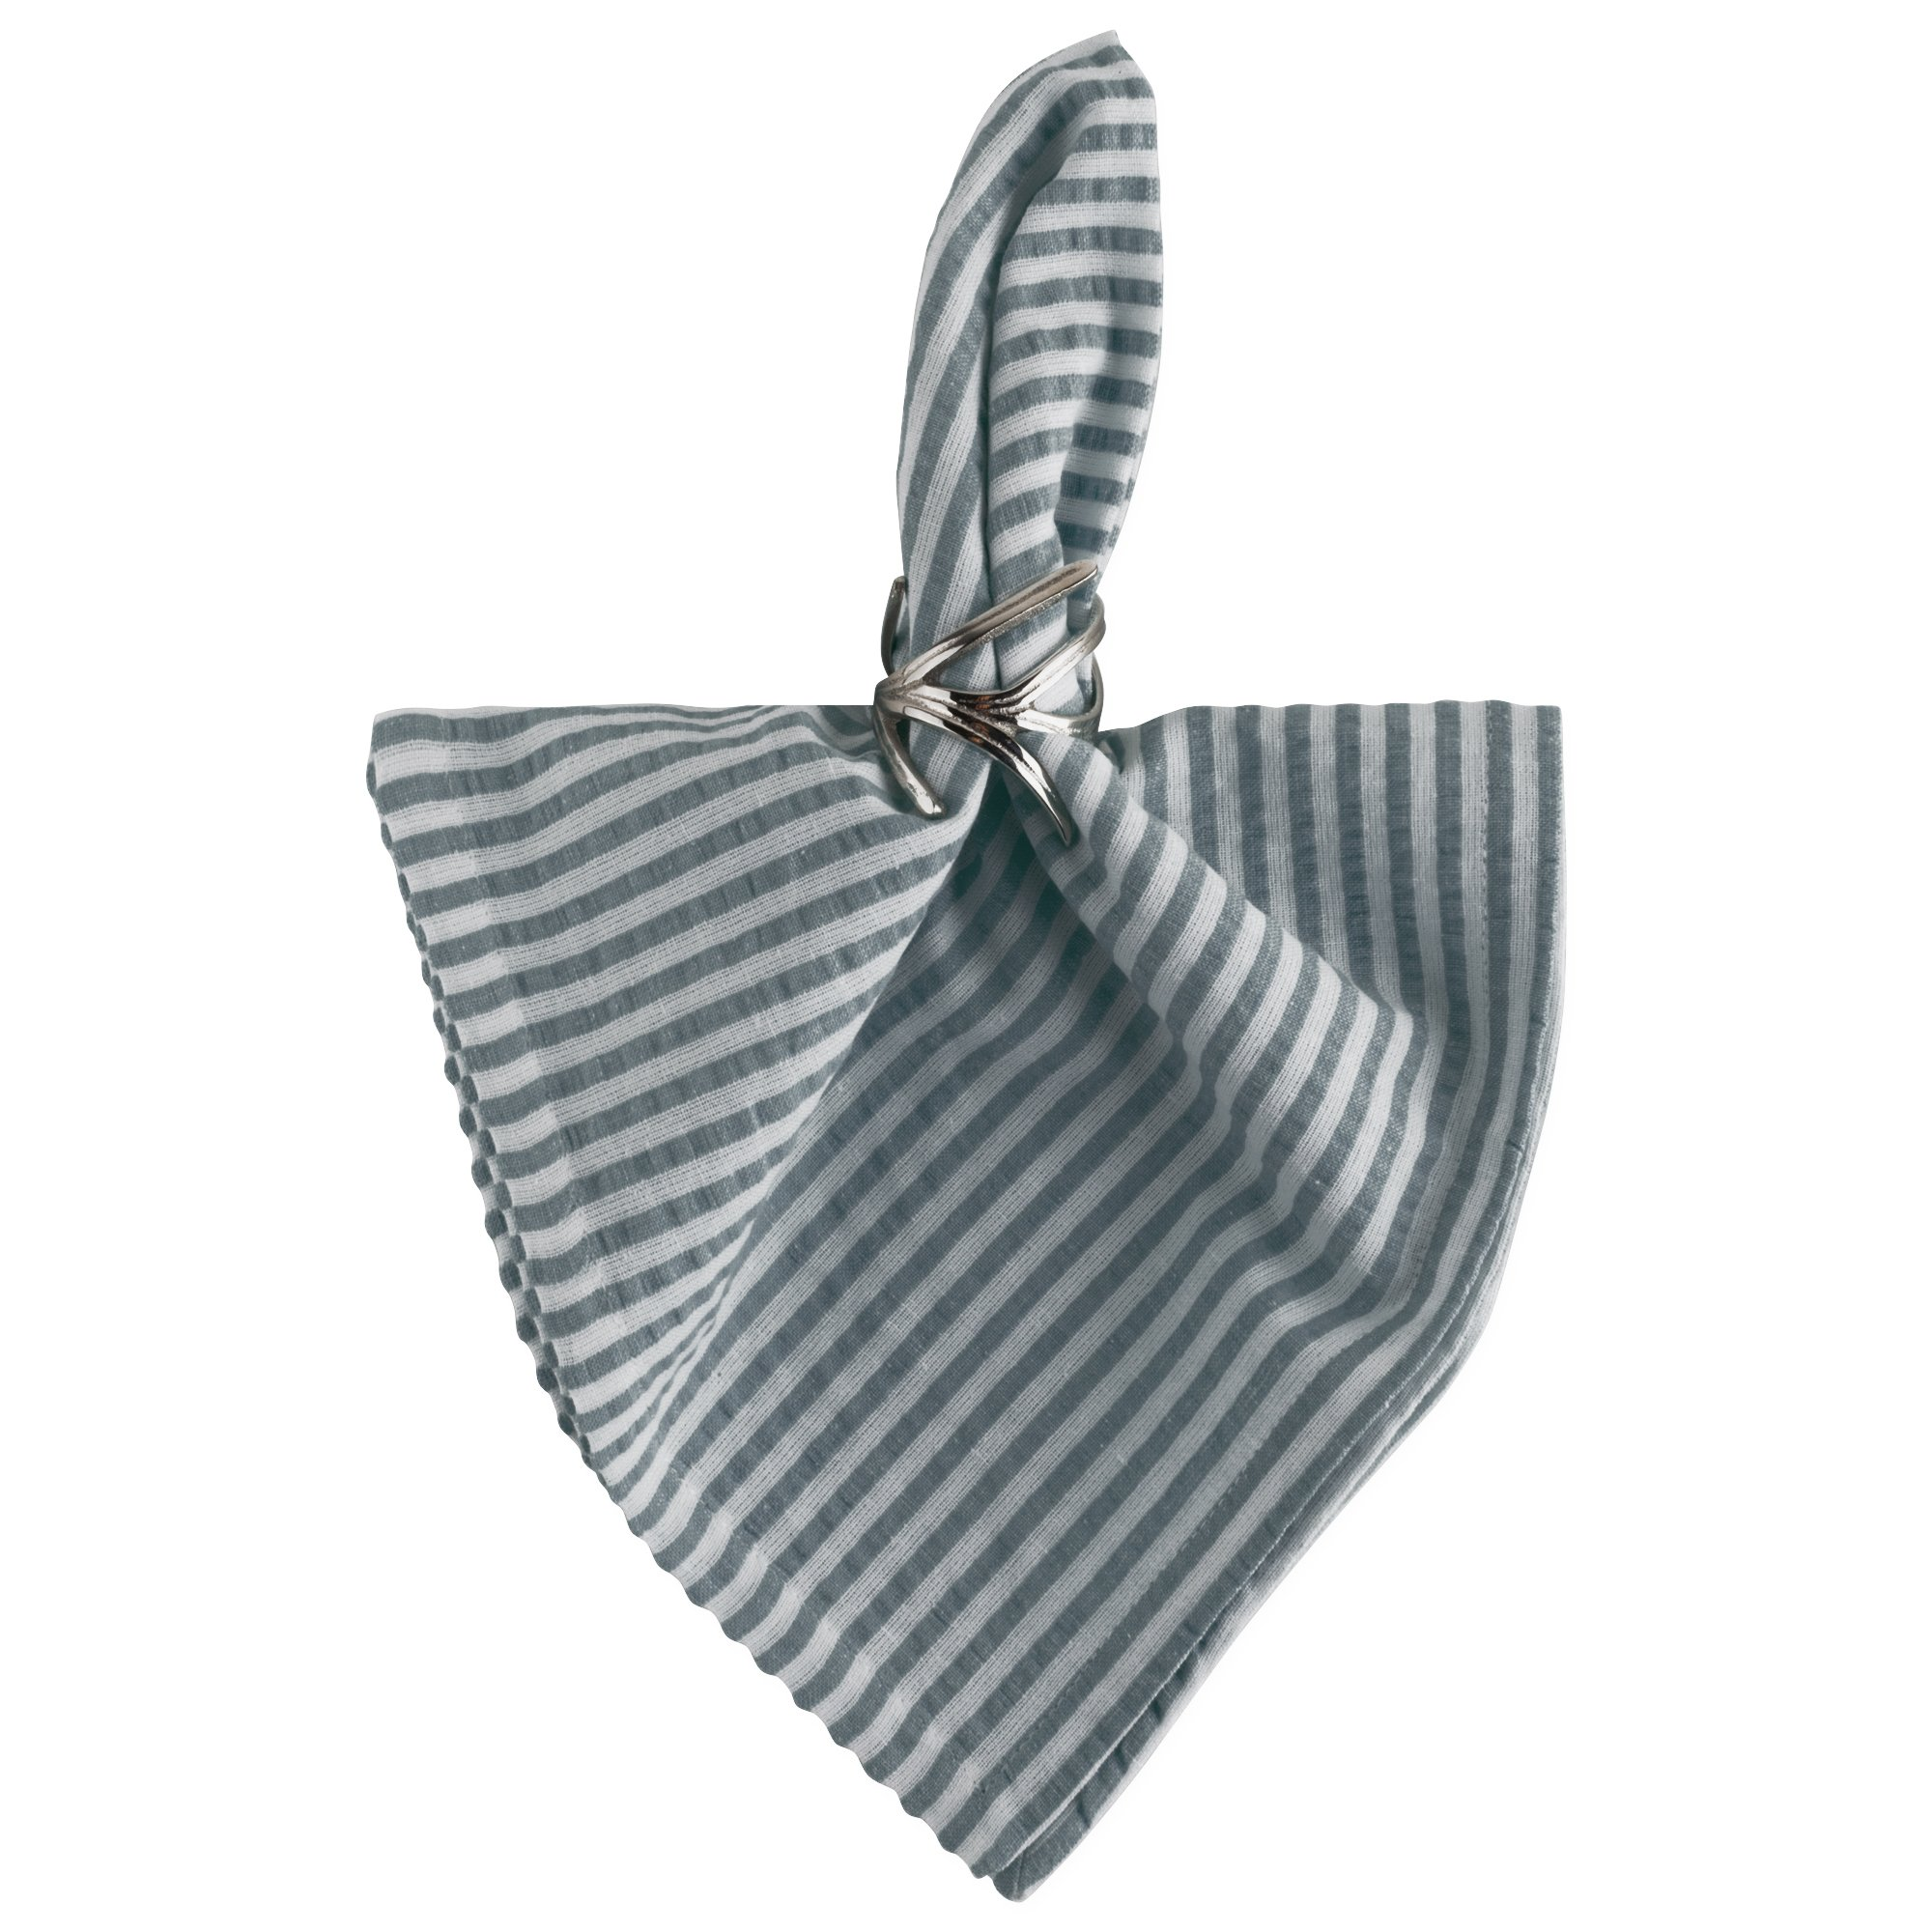 DII Cotton Seersucker Striped Napkin for Brunch, Weddings, Showers, Parties and Everyday Use, 20 x 20'', Mineral Gray and White by DII (Image #4)